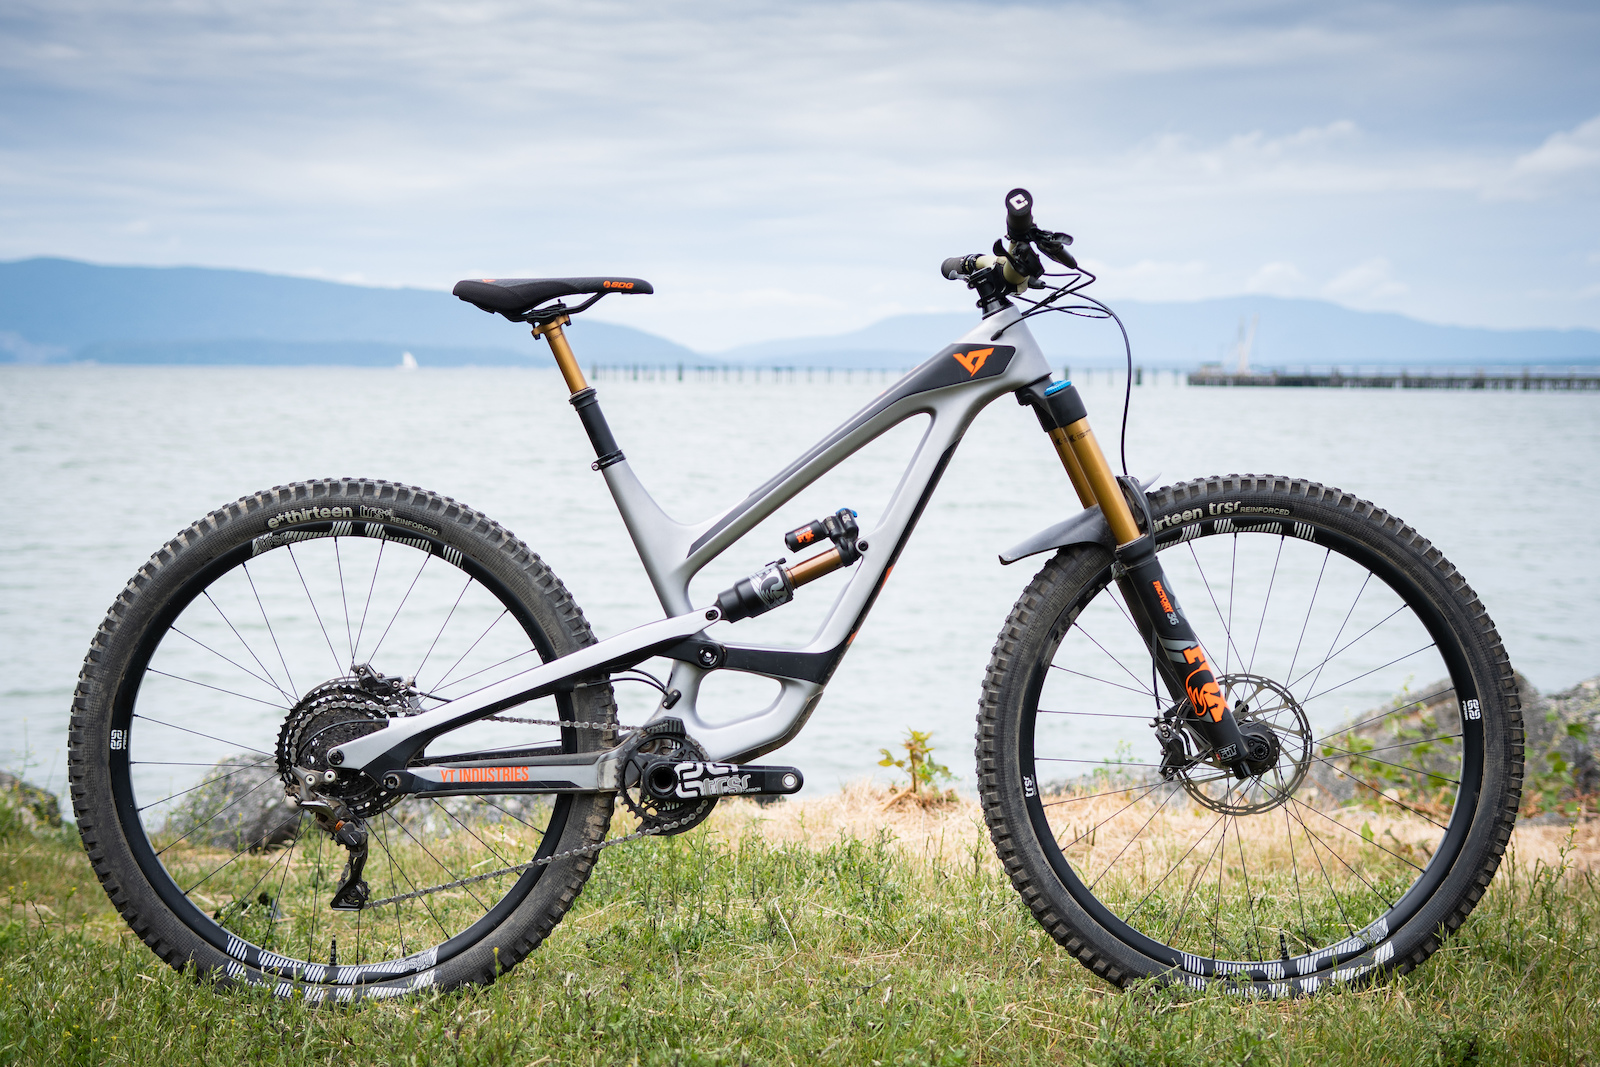 a3f615bee11 Review: YT Capra 29 CF Pro Race - Pinkbike